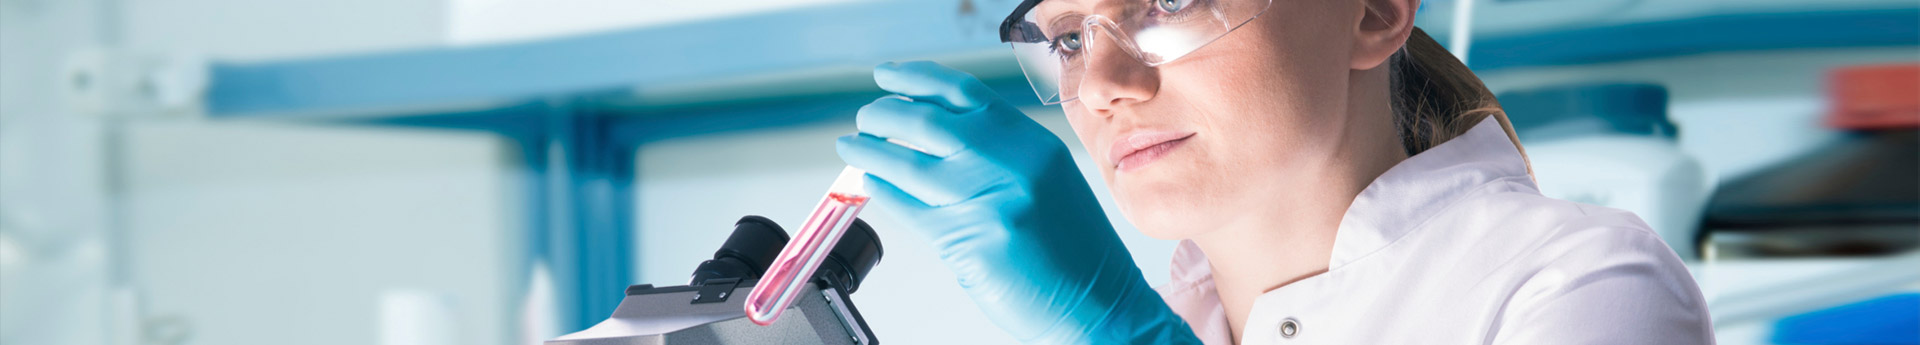 Woman in clinical or scientific laboratory examining a test tube